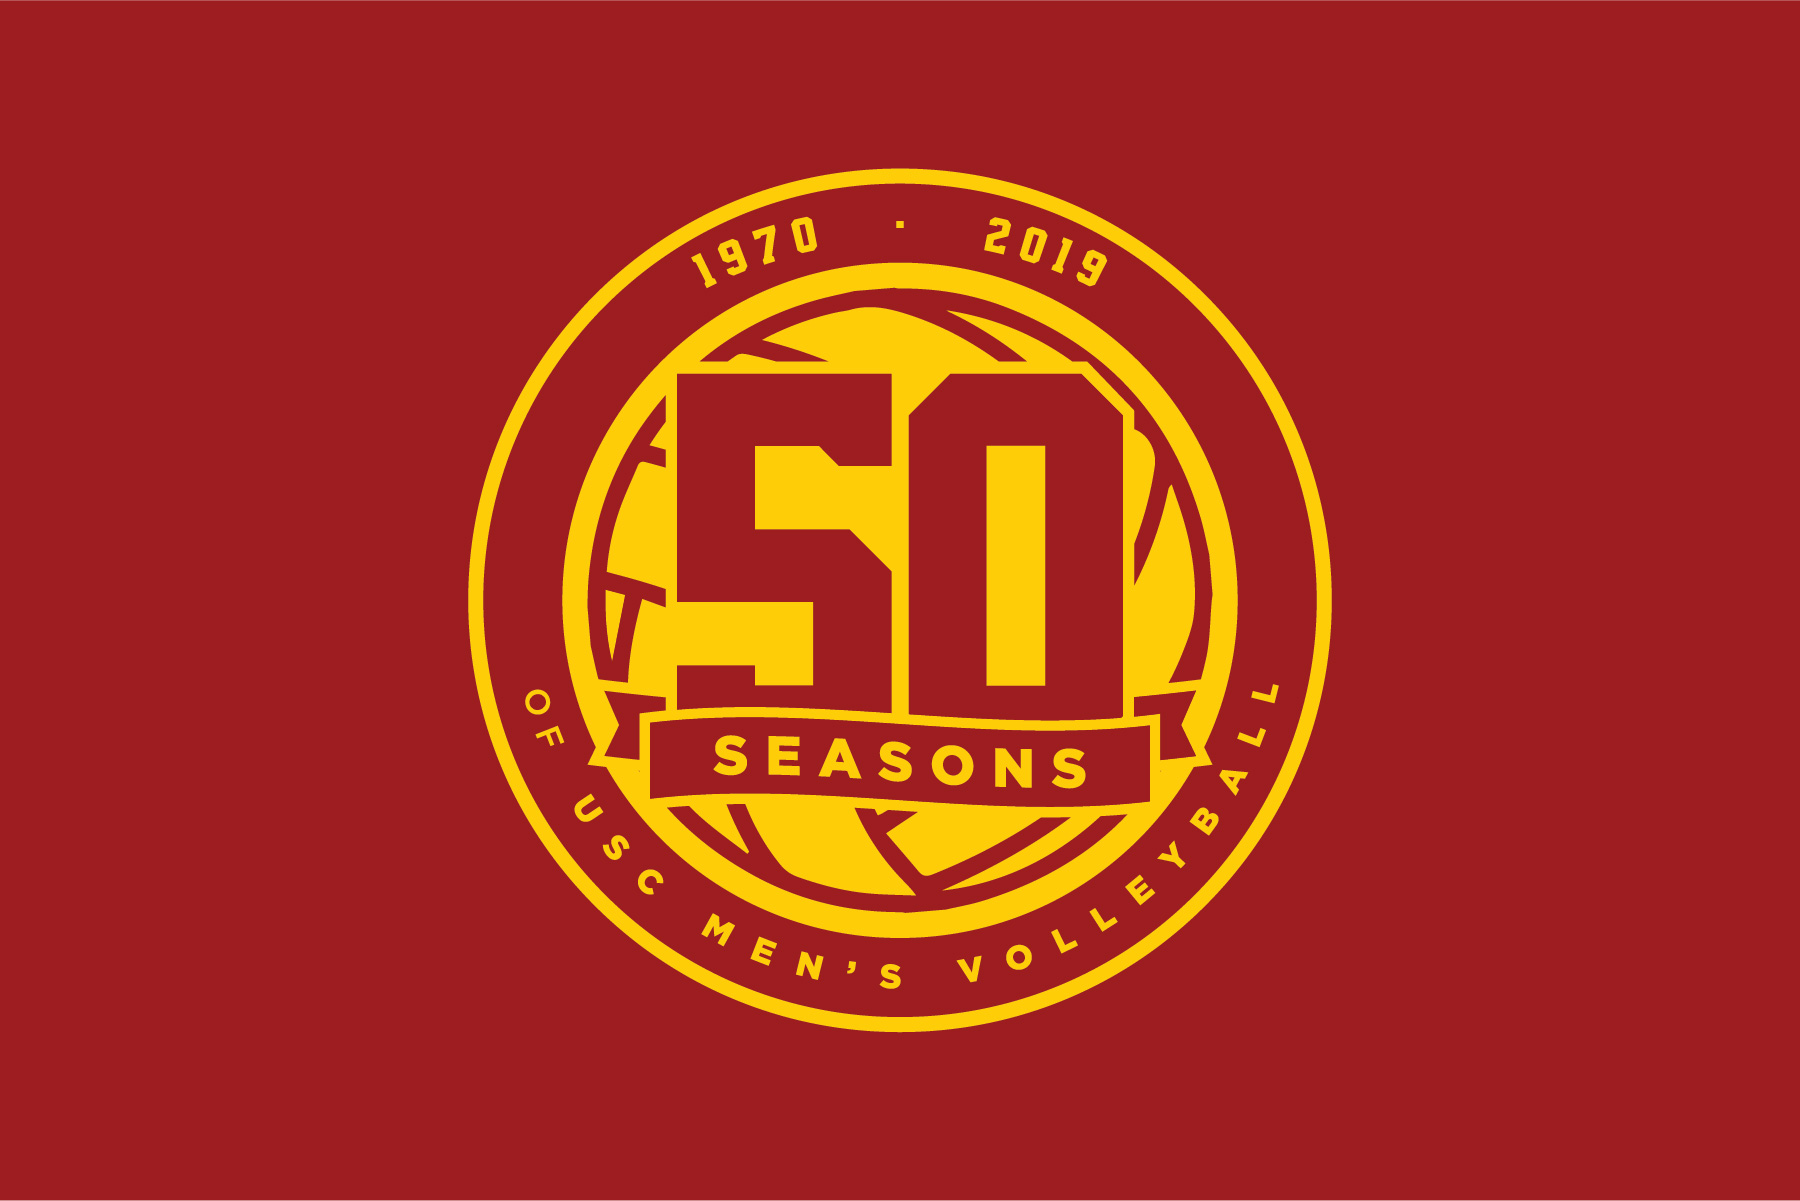 Logos Master File_50 seasons.jpg